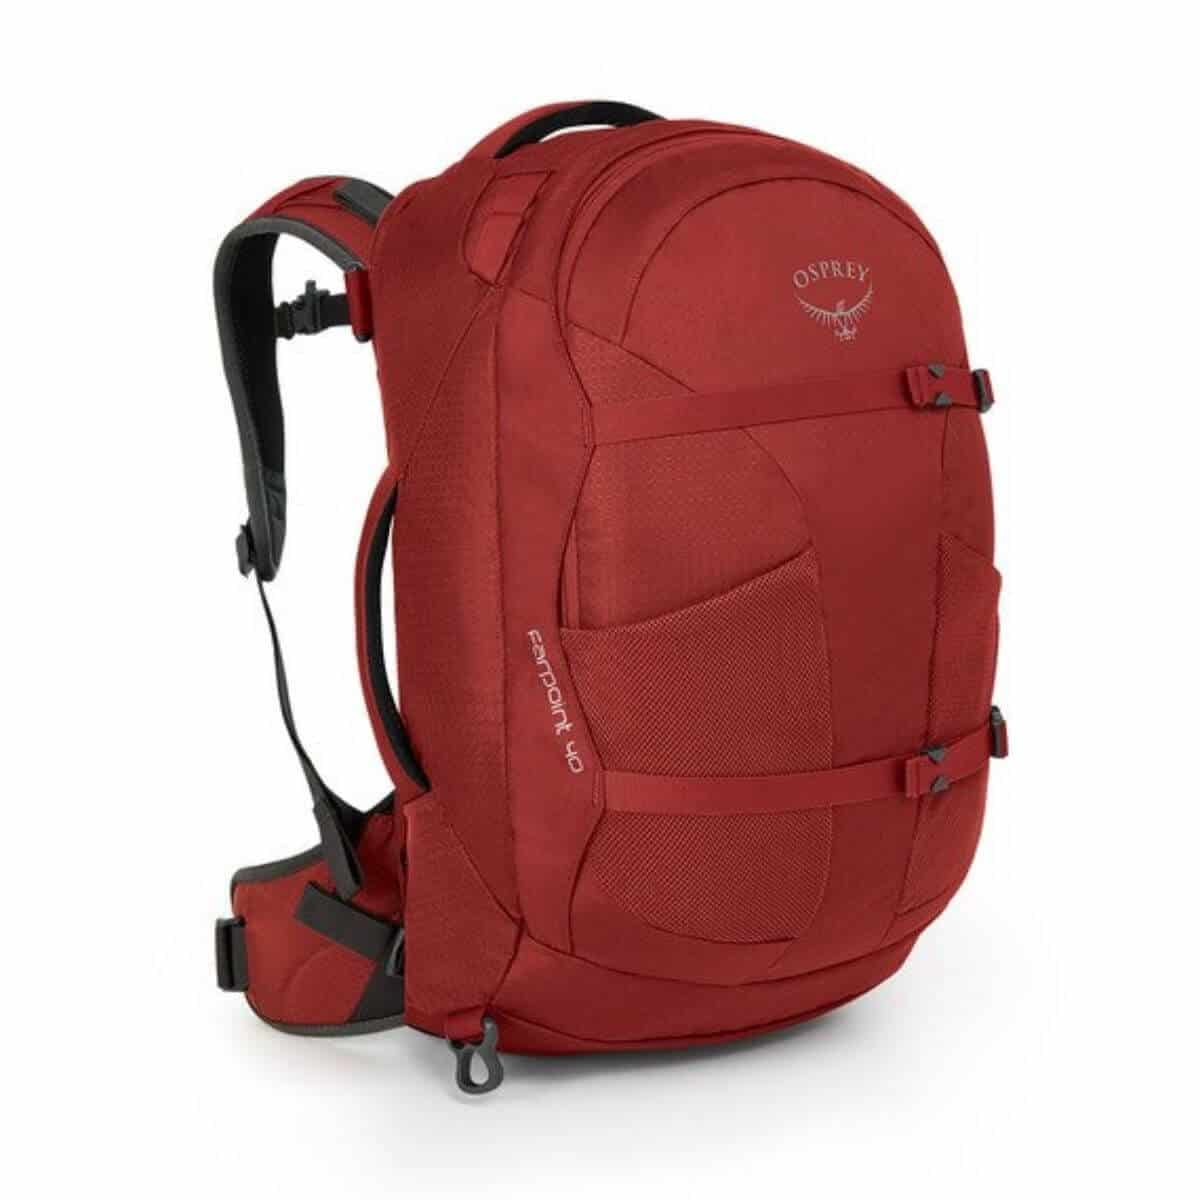 Red Osprey travel backpack.